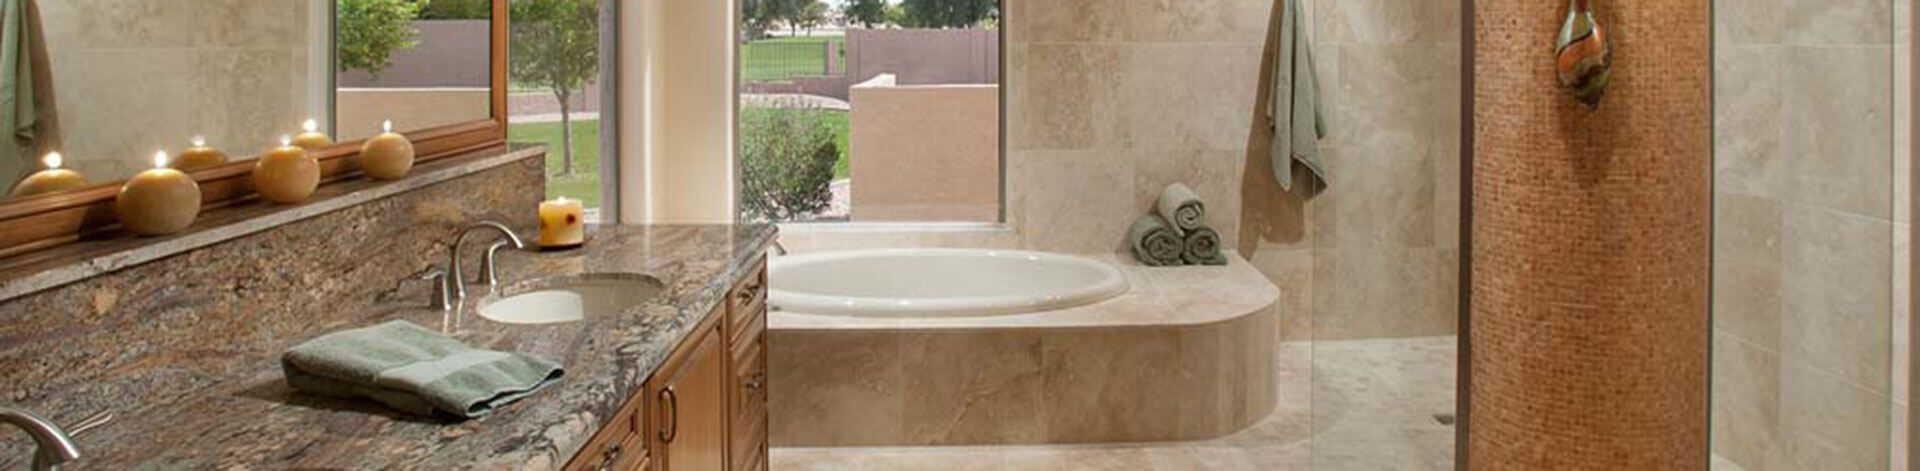 bathroom remodeling in phoenix scottsdale republic